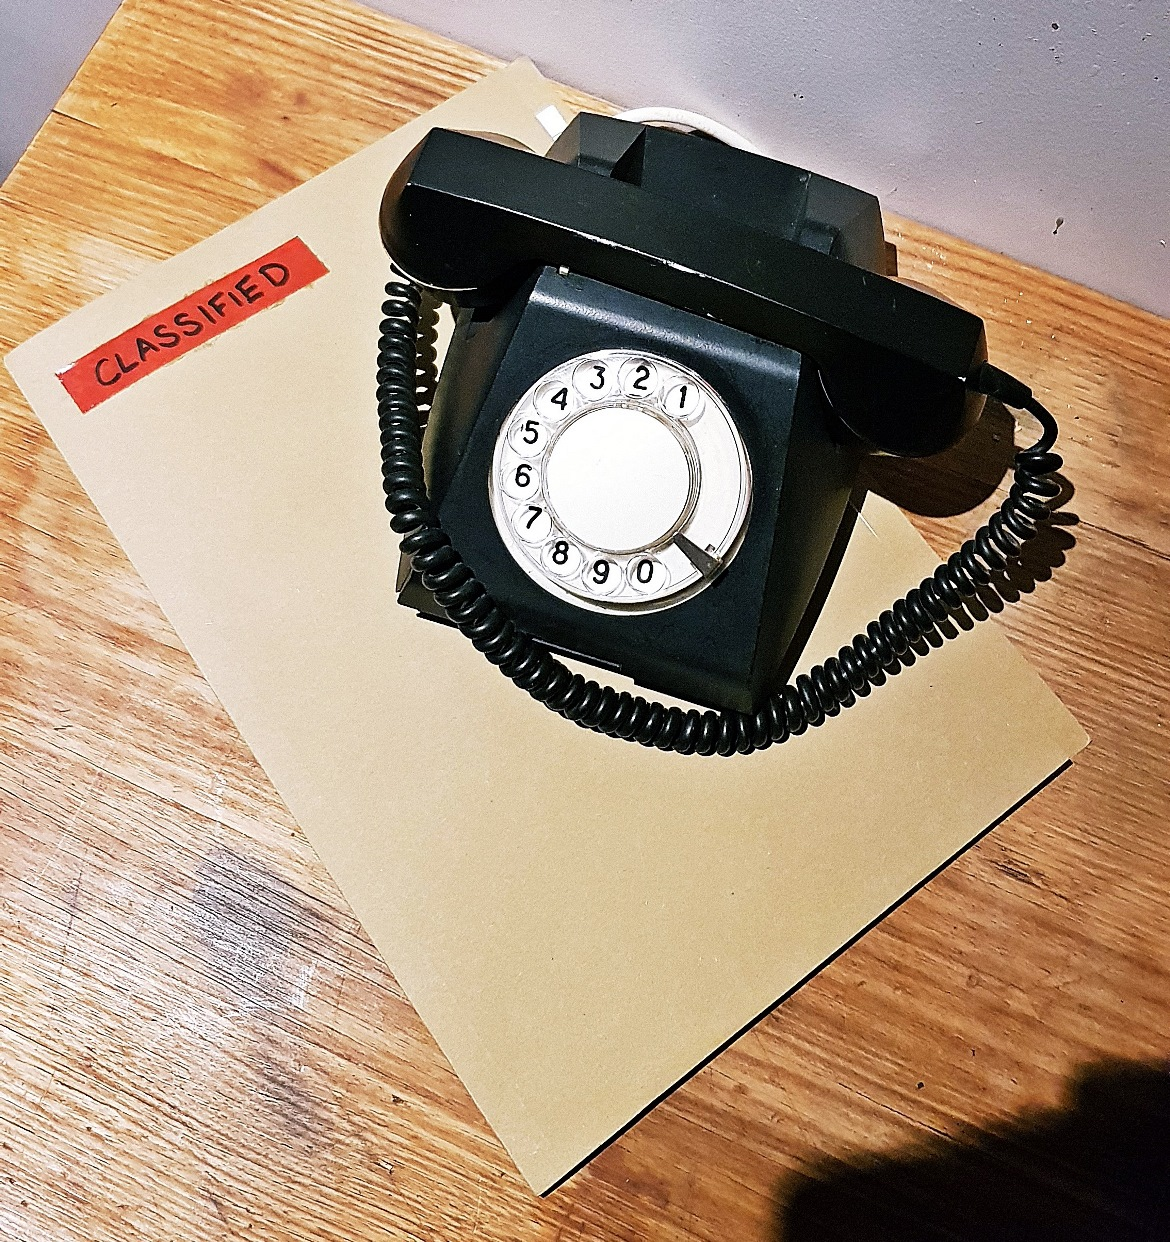 Phone and a confidential folder - Our Finest Hour, escape room by Escape Hunt Leeds, review by BeckyBecky Blogs